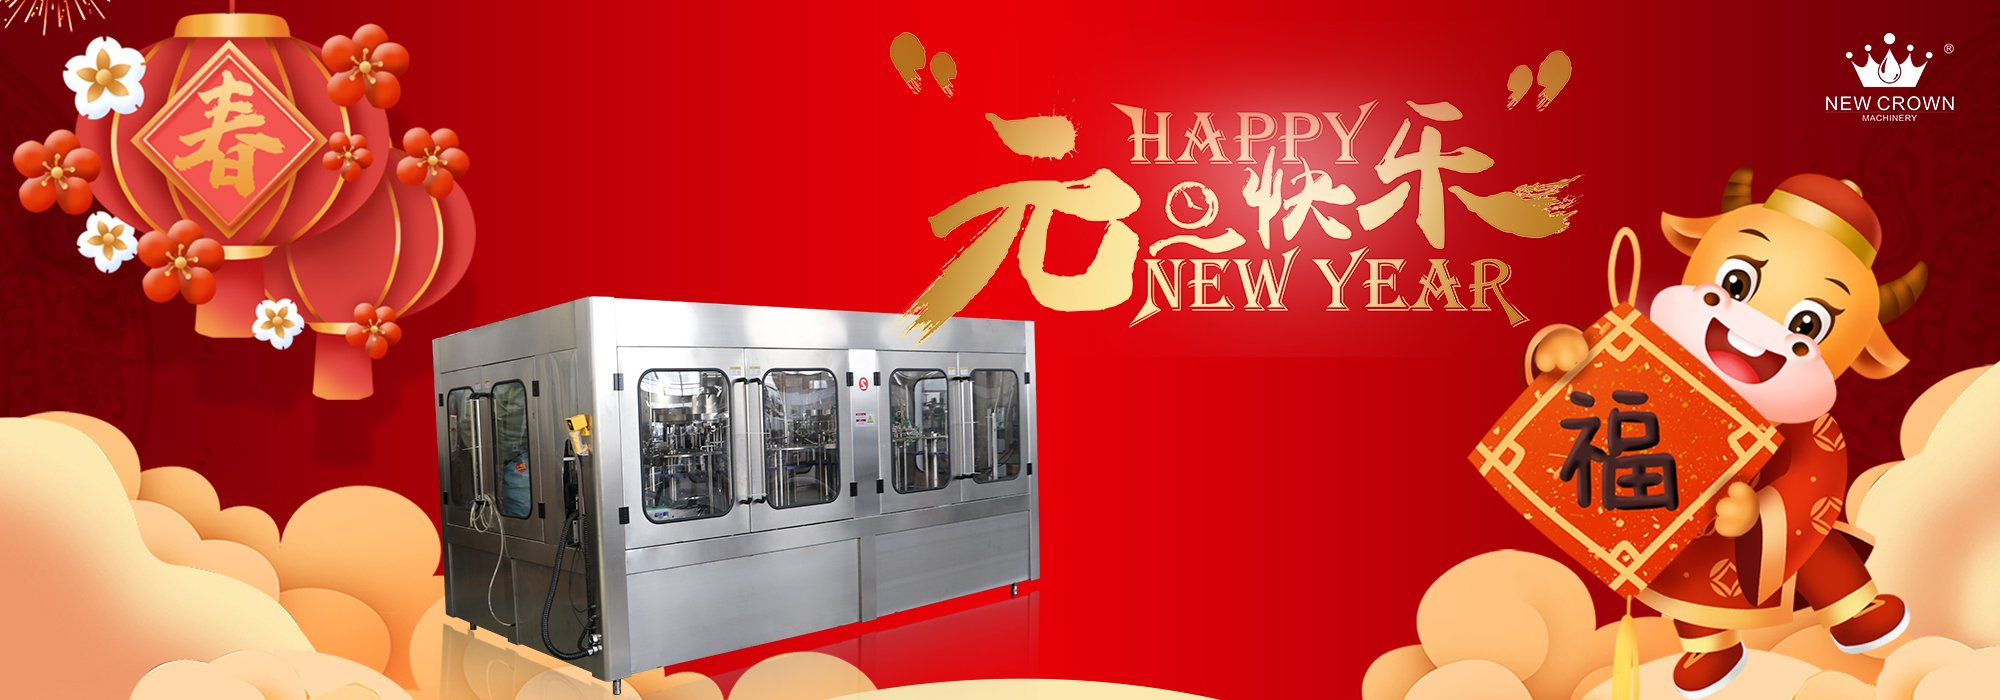 Wishing you a happy New Year, Happiness comes!